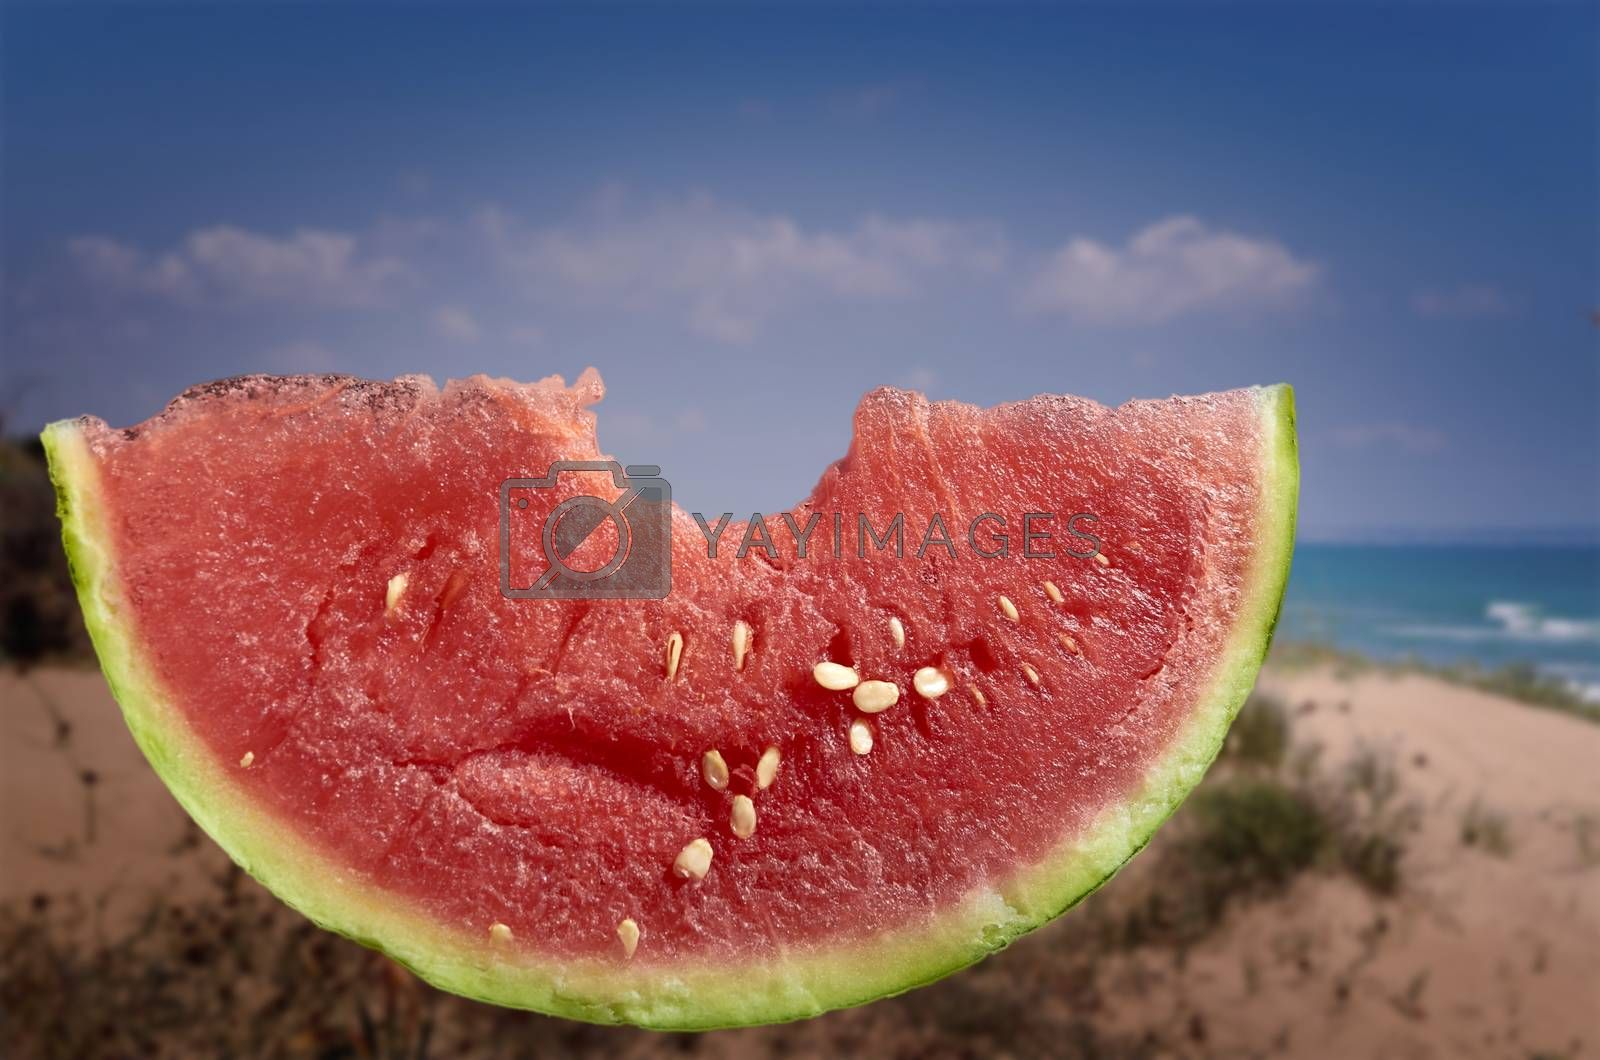 Slice of watermelon with bite and unfocused beach background